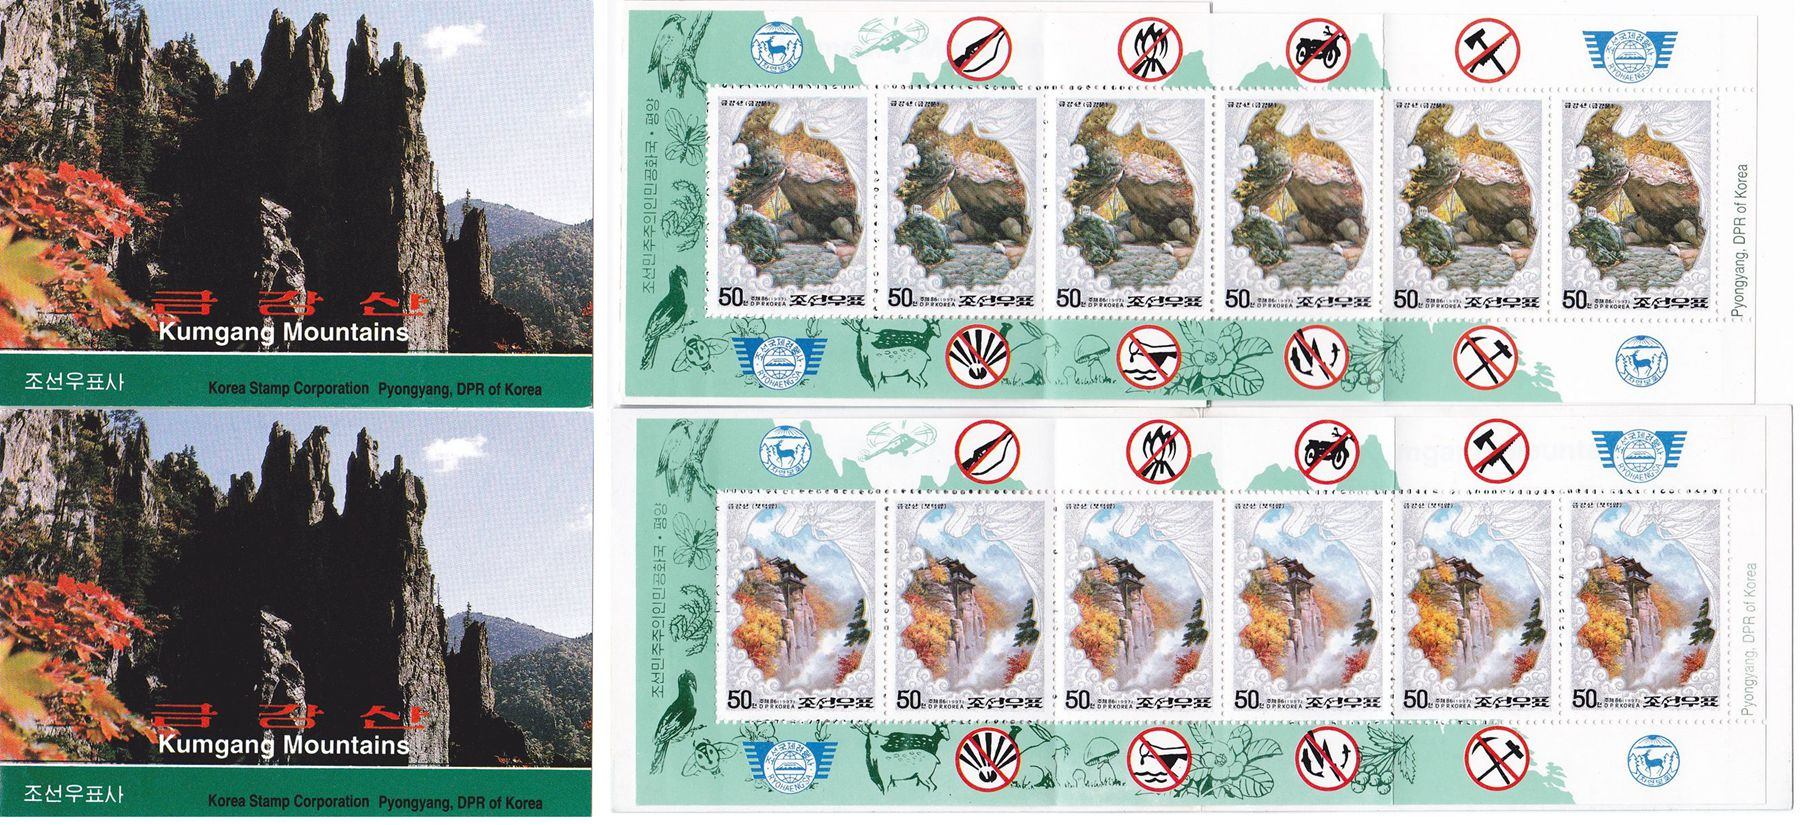 "L9080, Korea ""Kumgang Mountains"" Stamp Booklet 2 Pcs, 1997"